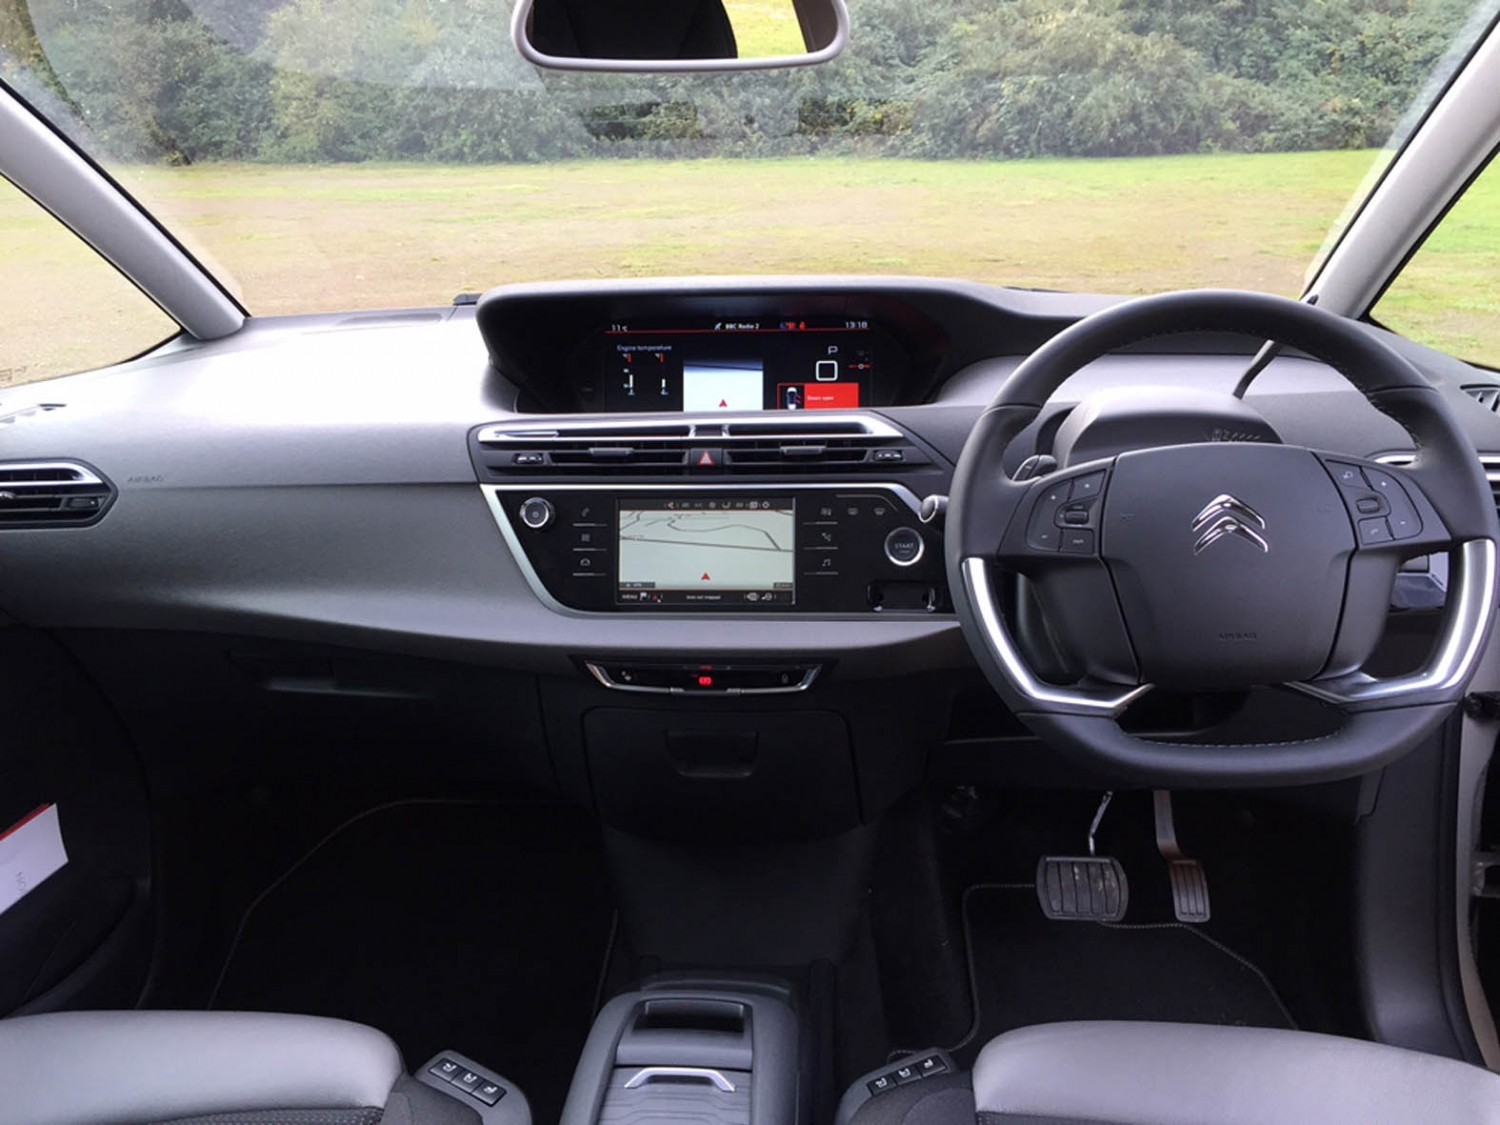 Citroen grand c4 picasso flair bluehdi 150 eurekar - C4 picasso interior ...